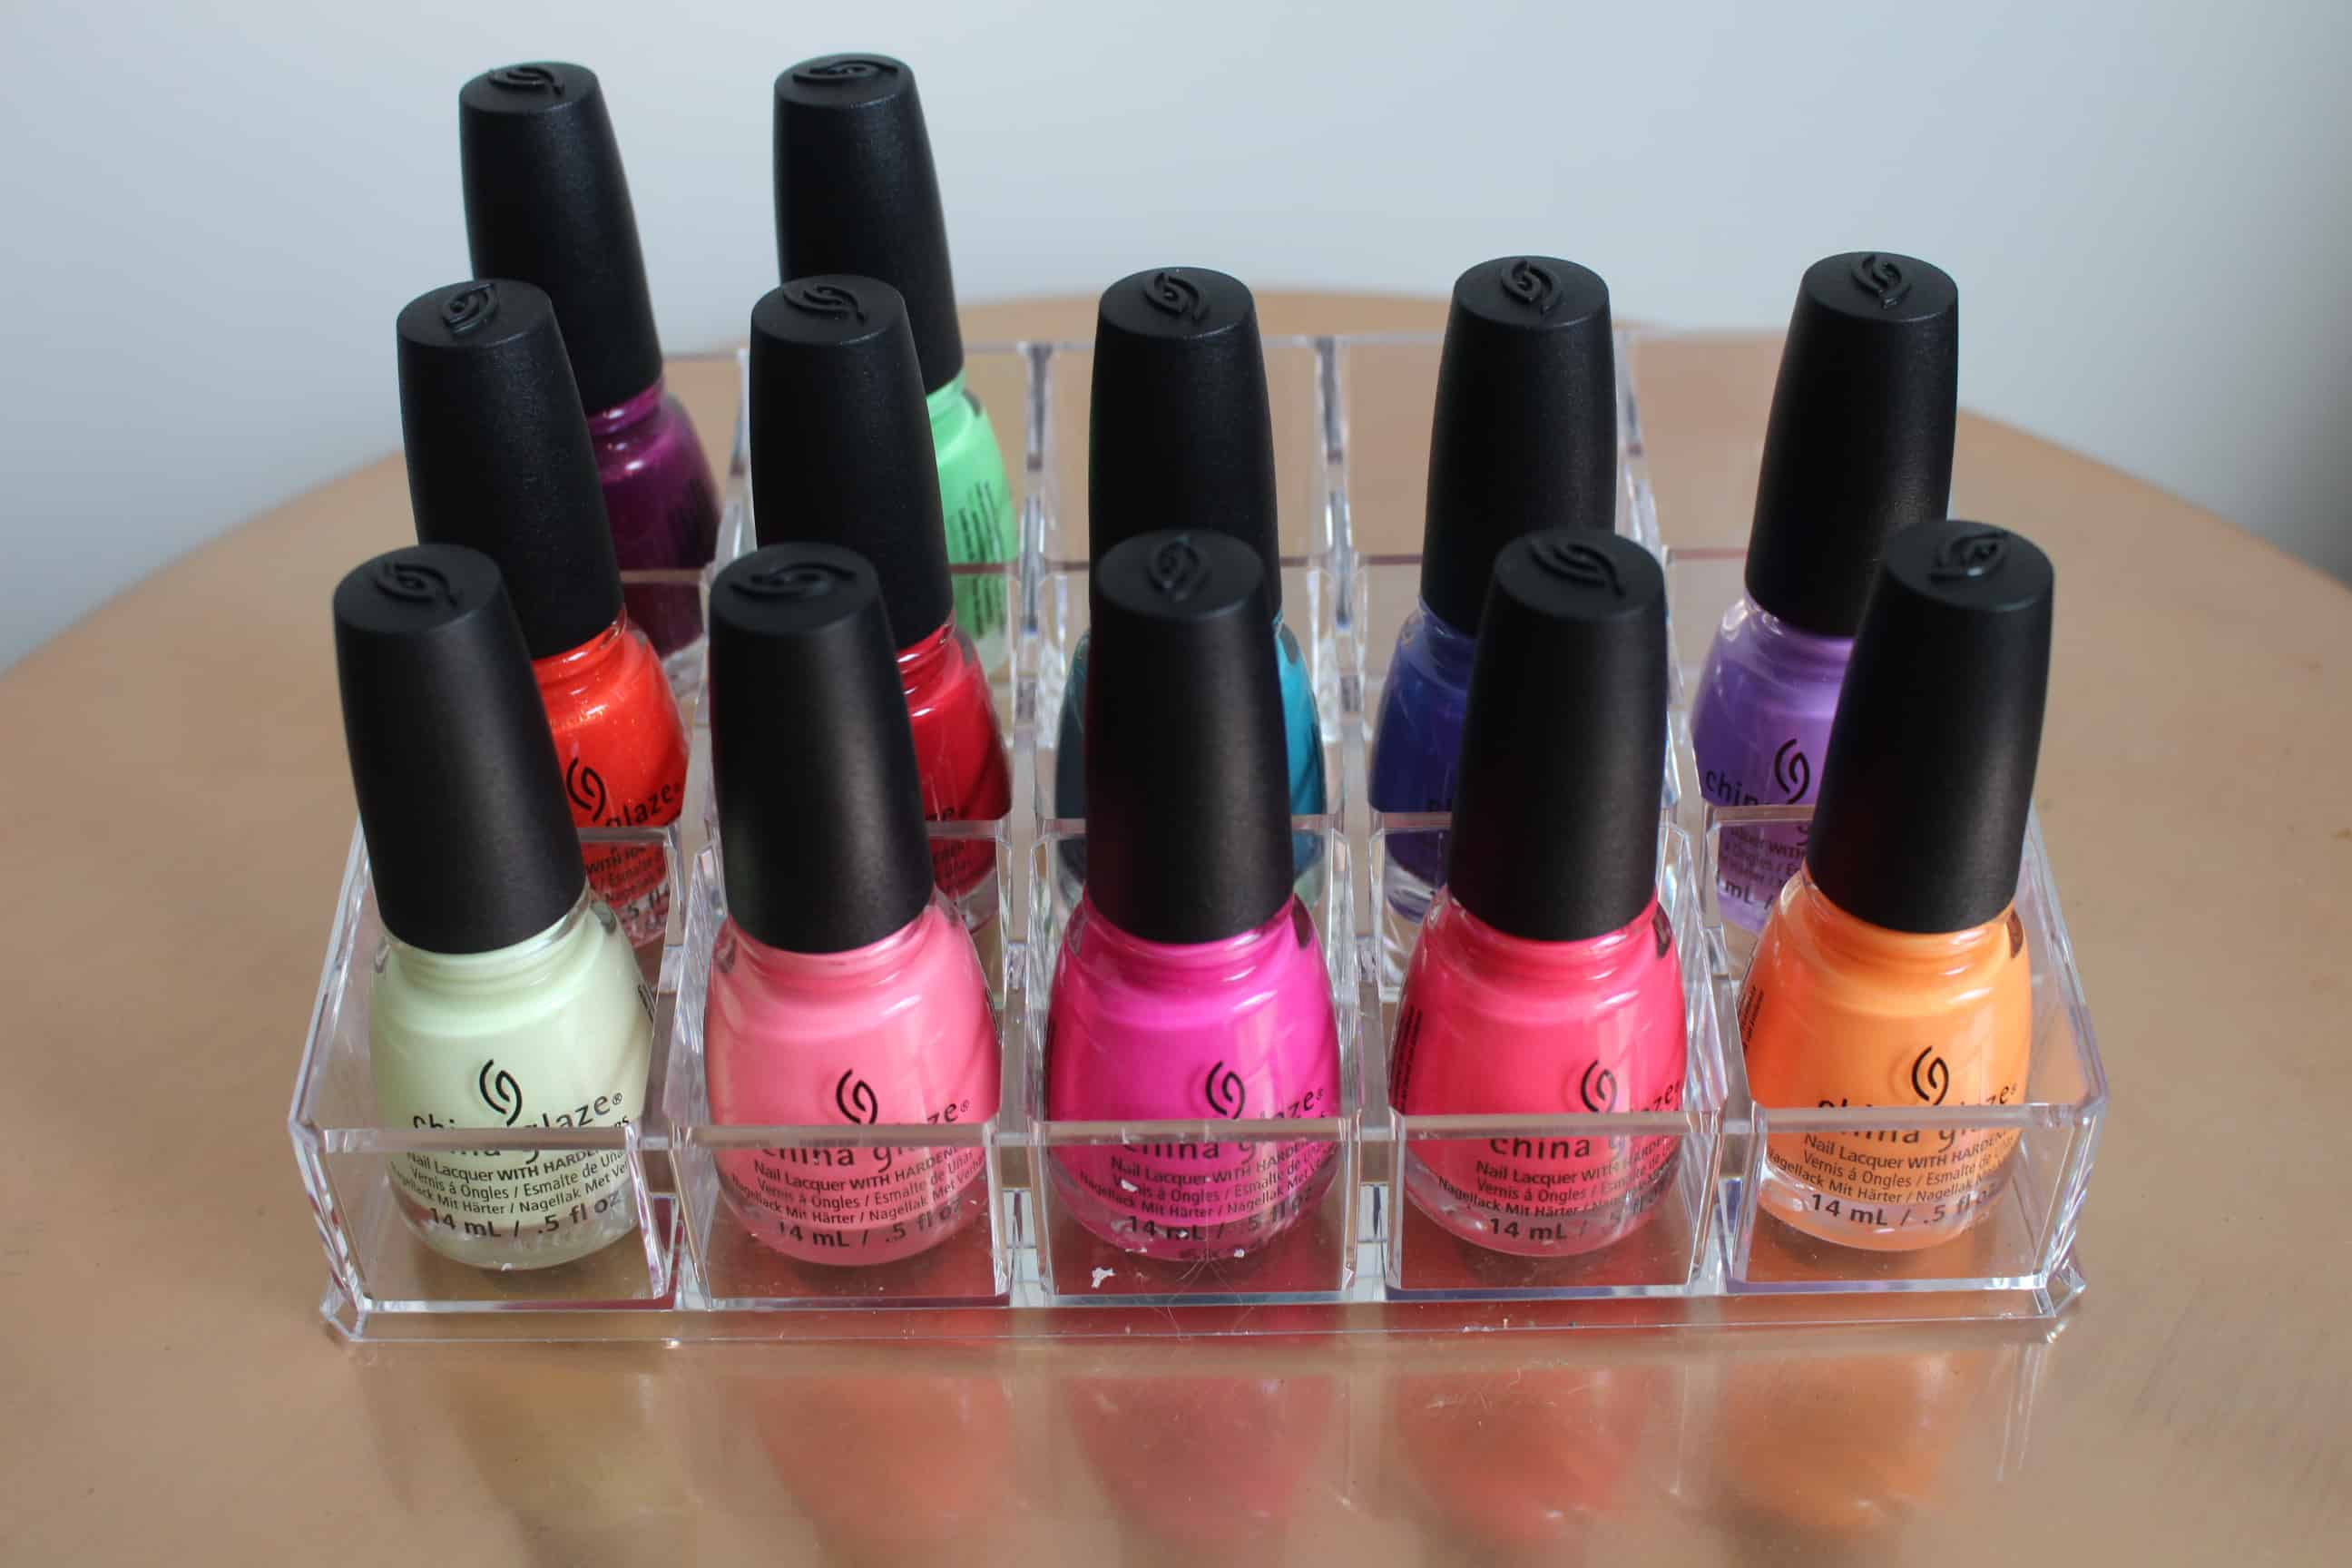 How I Stopped Biting My Nails... Permanently - A Love 4 Me